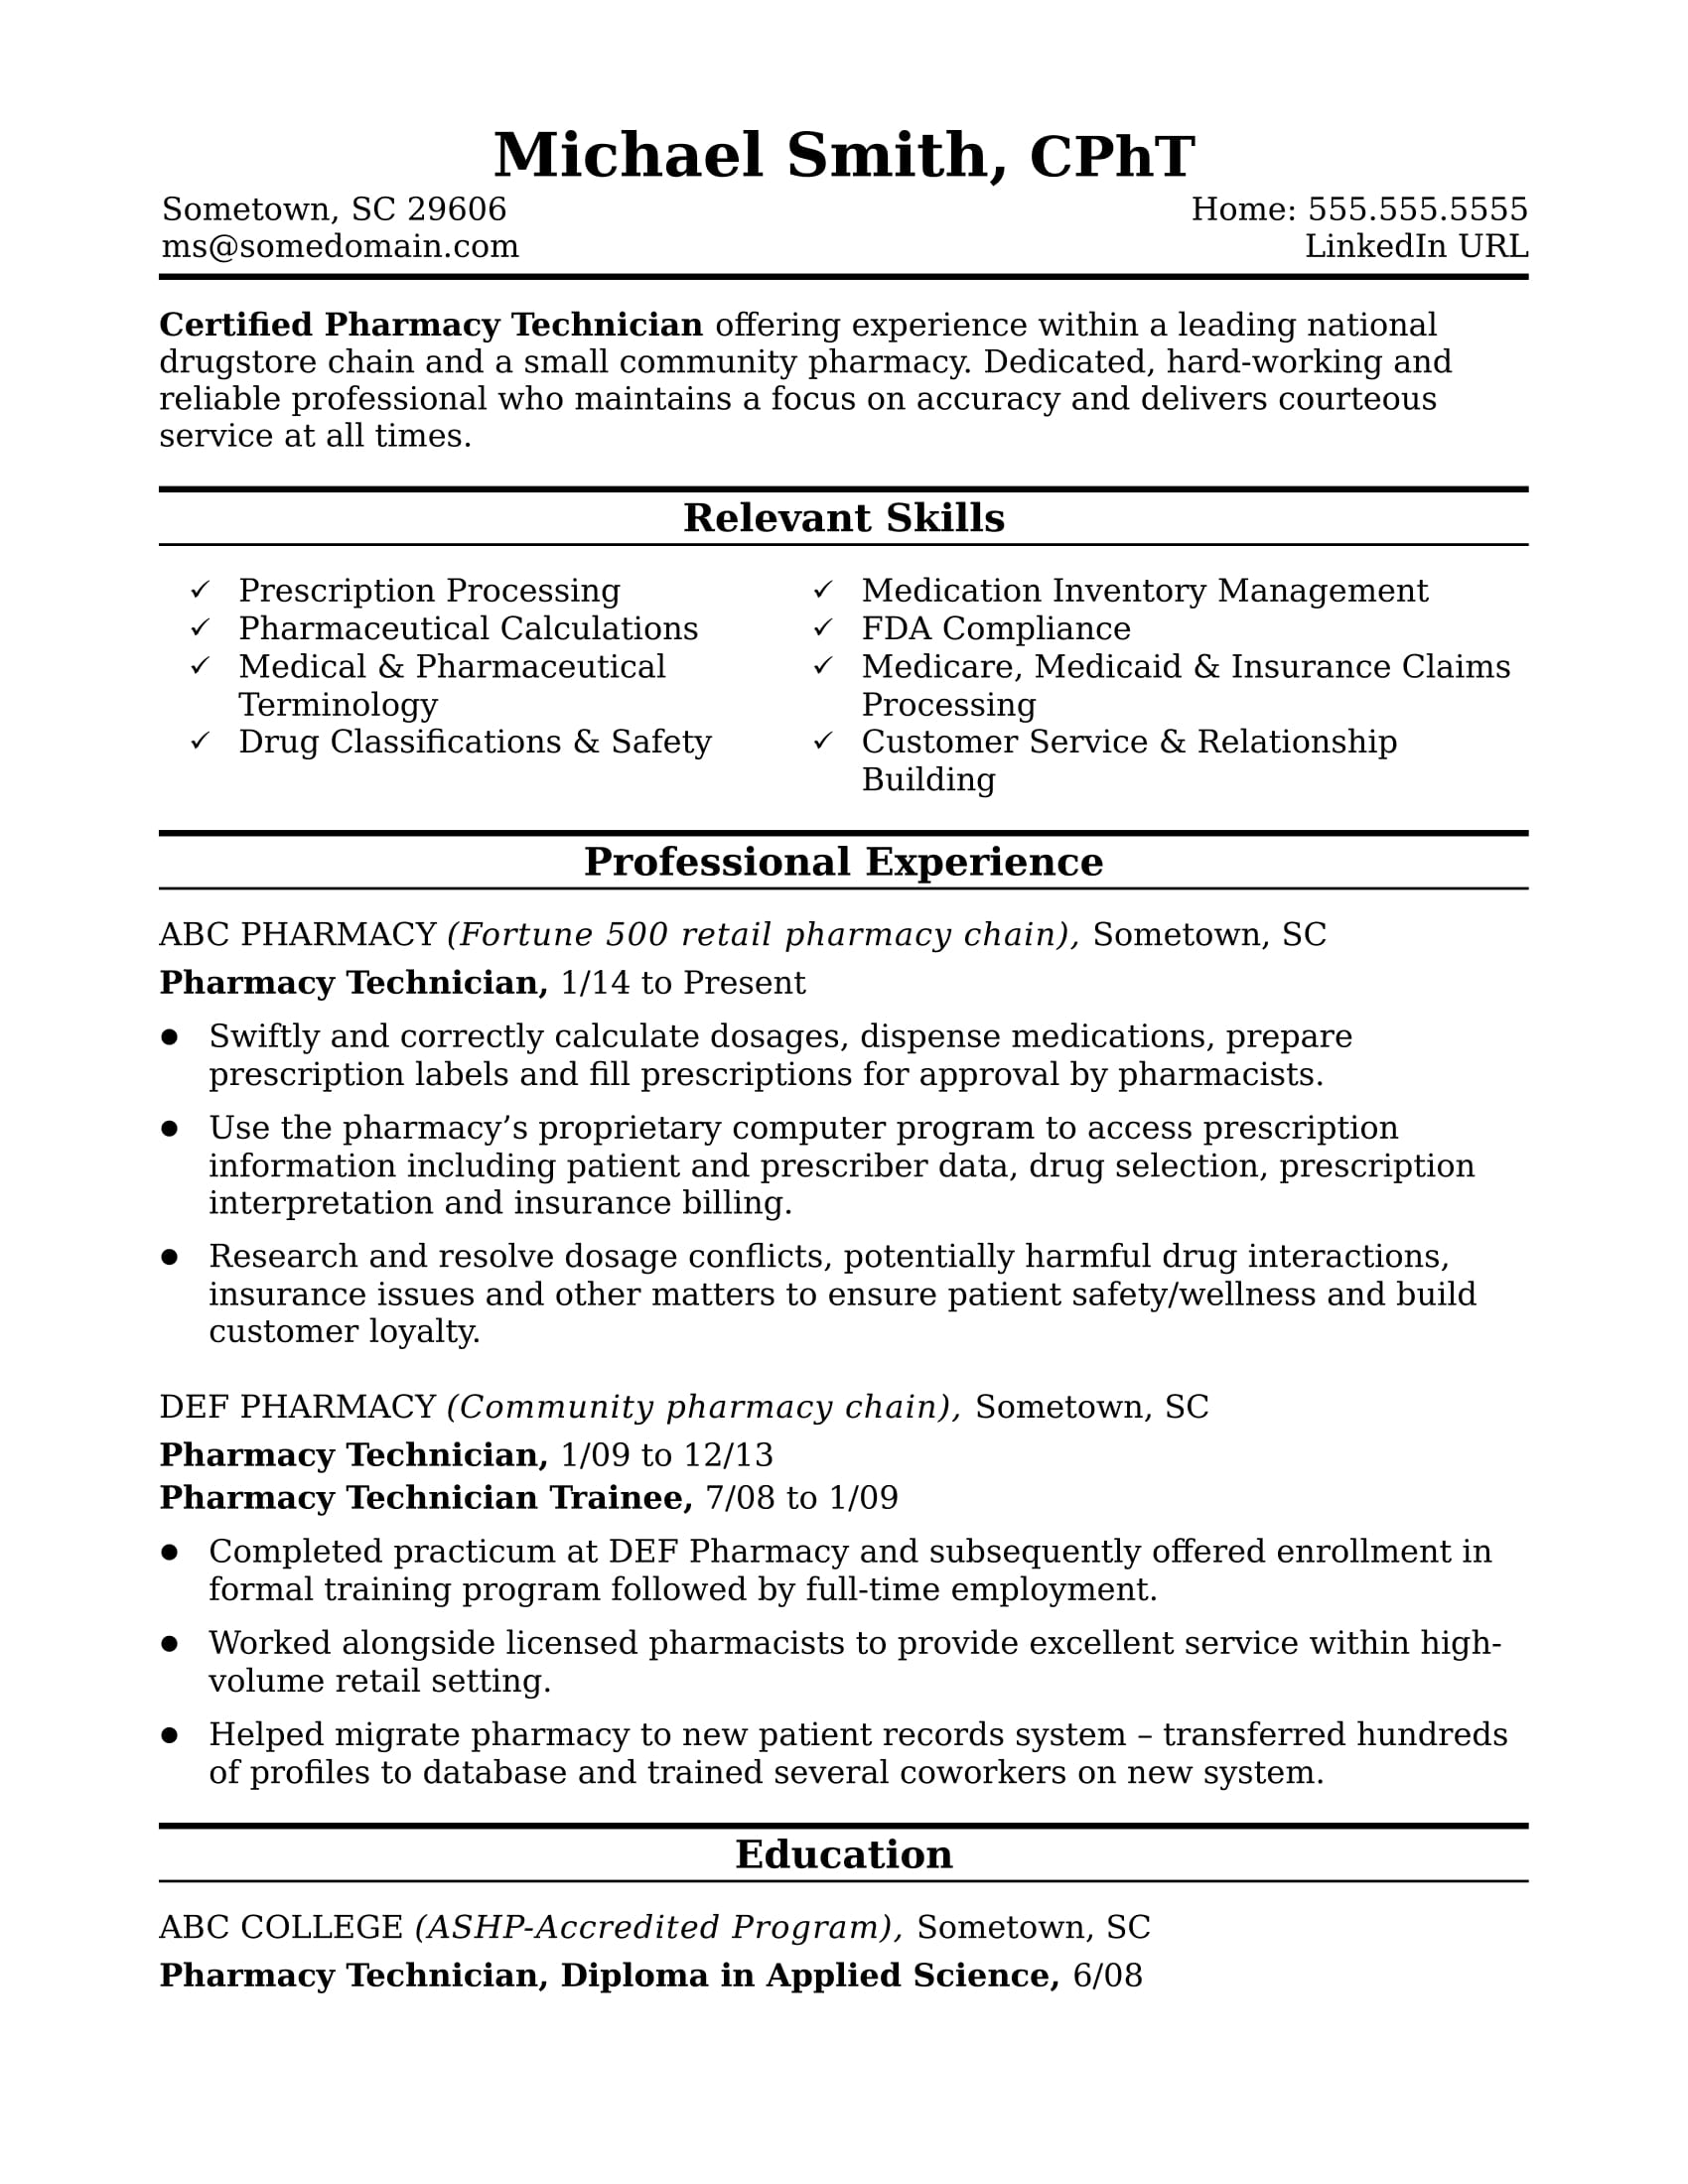 Superior Sample Resume For A Pharmacy Technician And Pharmacy Technician Sample Resume